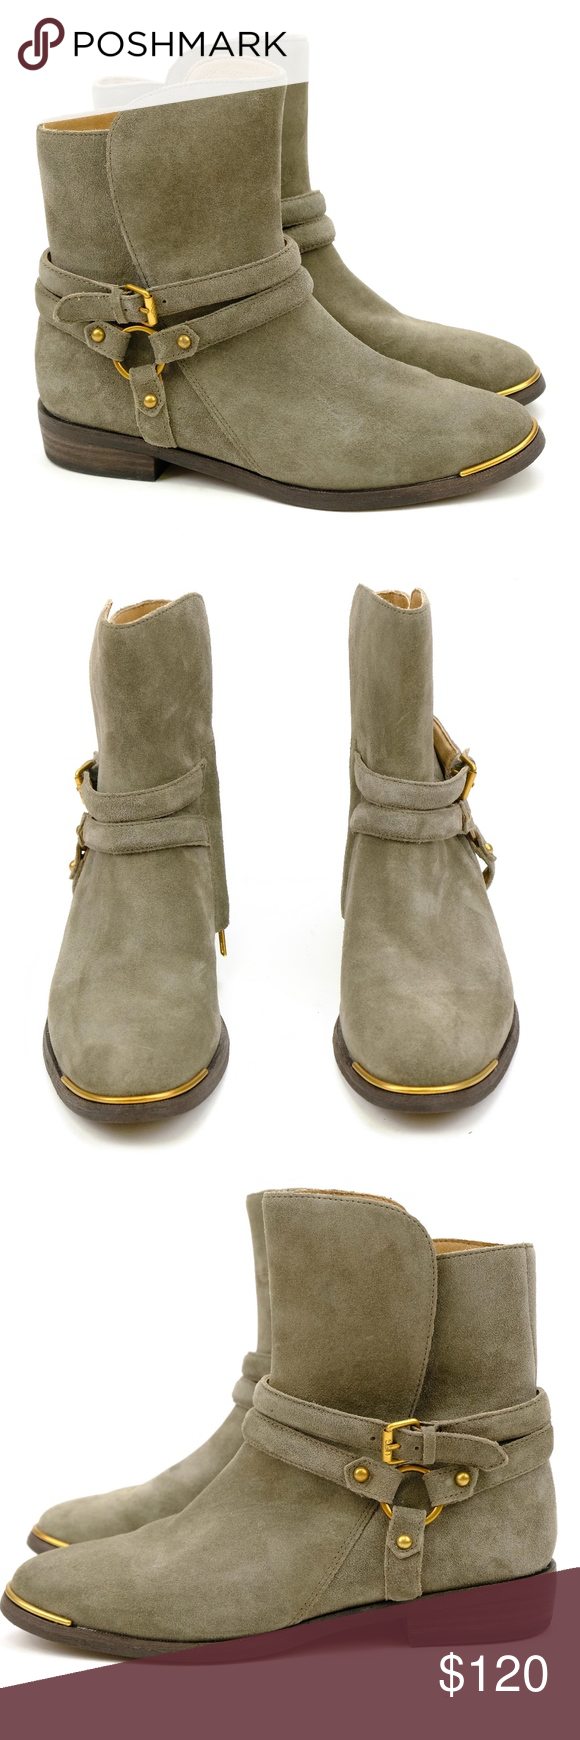 4b0ba72cb16 UGG Kelby Mouse Gray / Gold Suede Ankle Boots NEW A notch above your ...